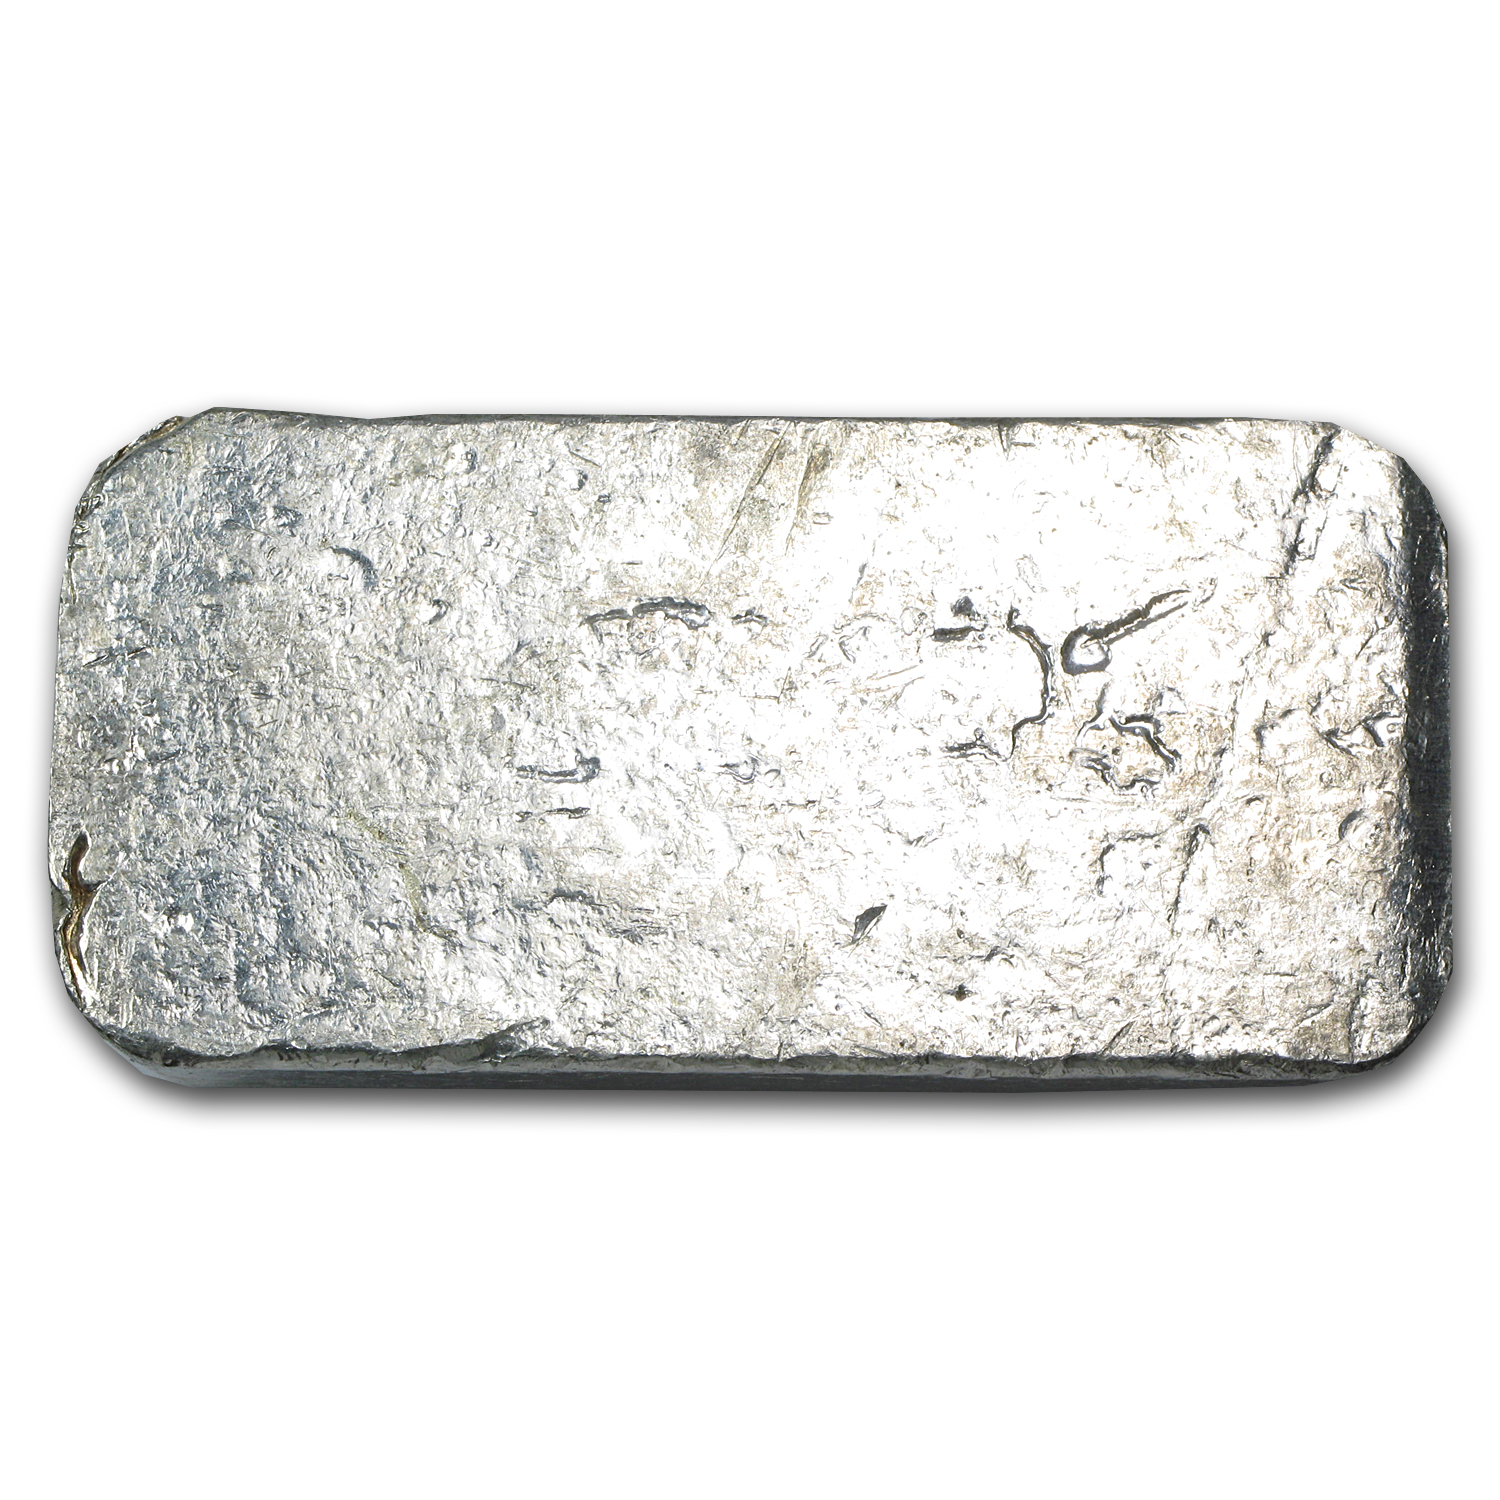 10.32 oz Silver Bars - Star Metals 10.3410.32